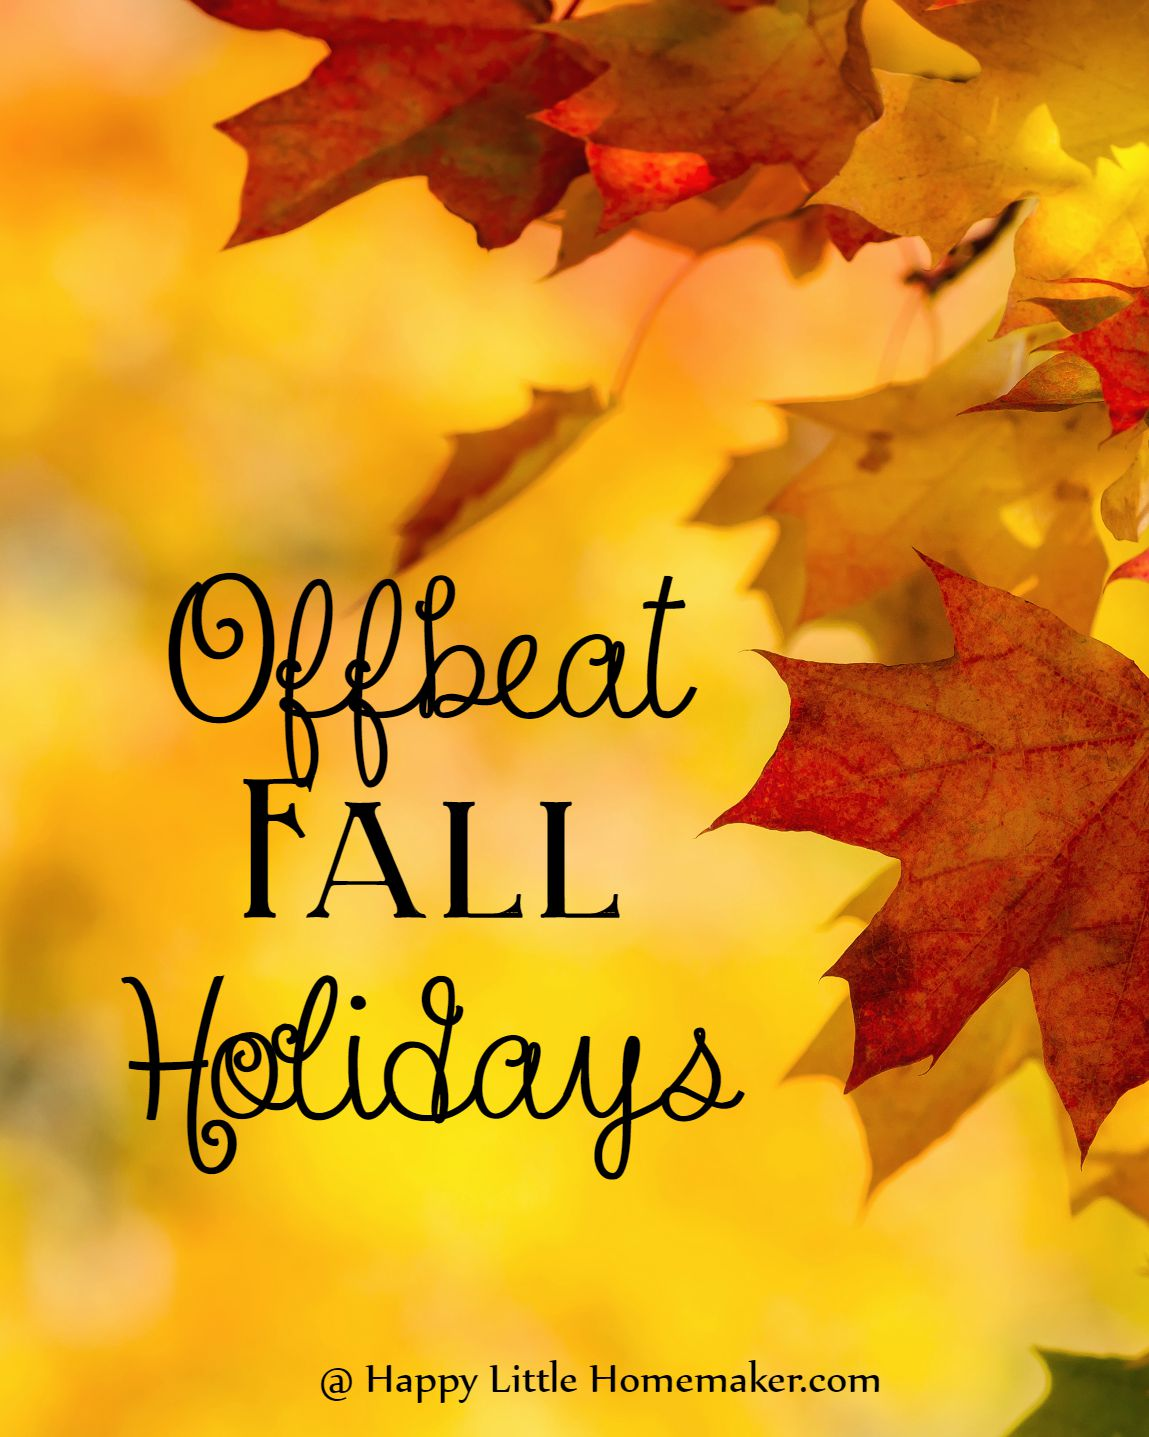 offbeat fall holidays